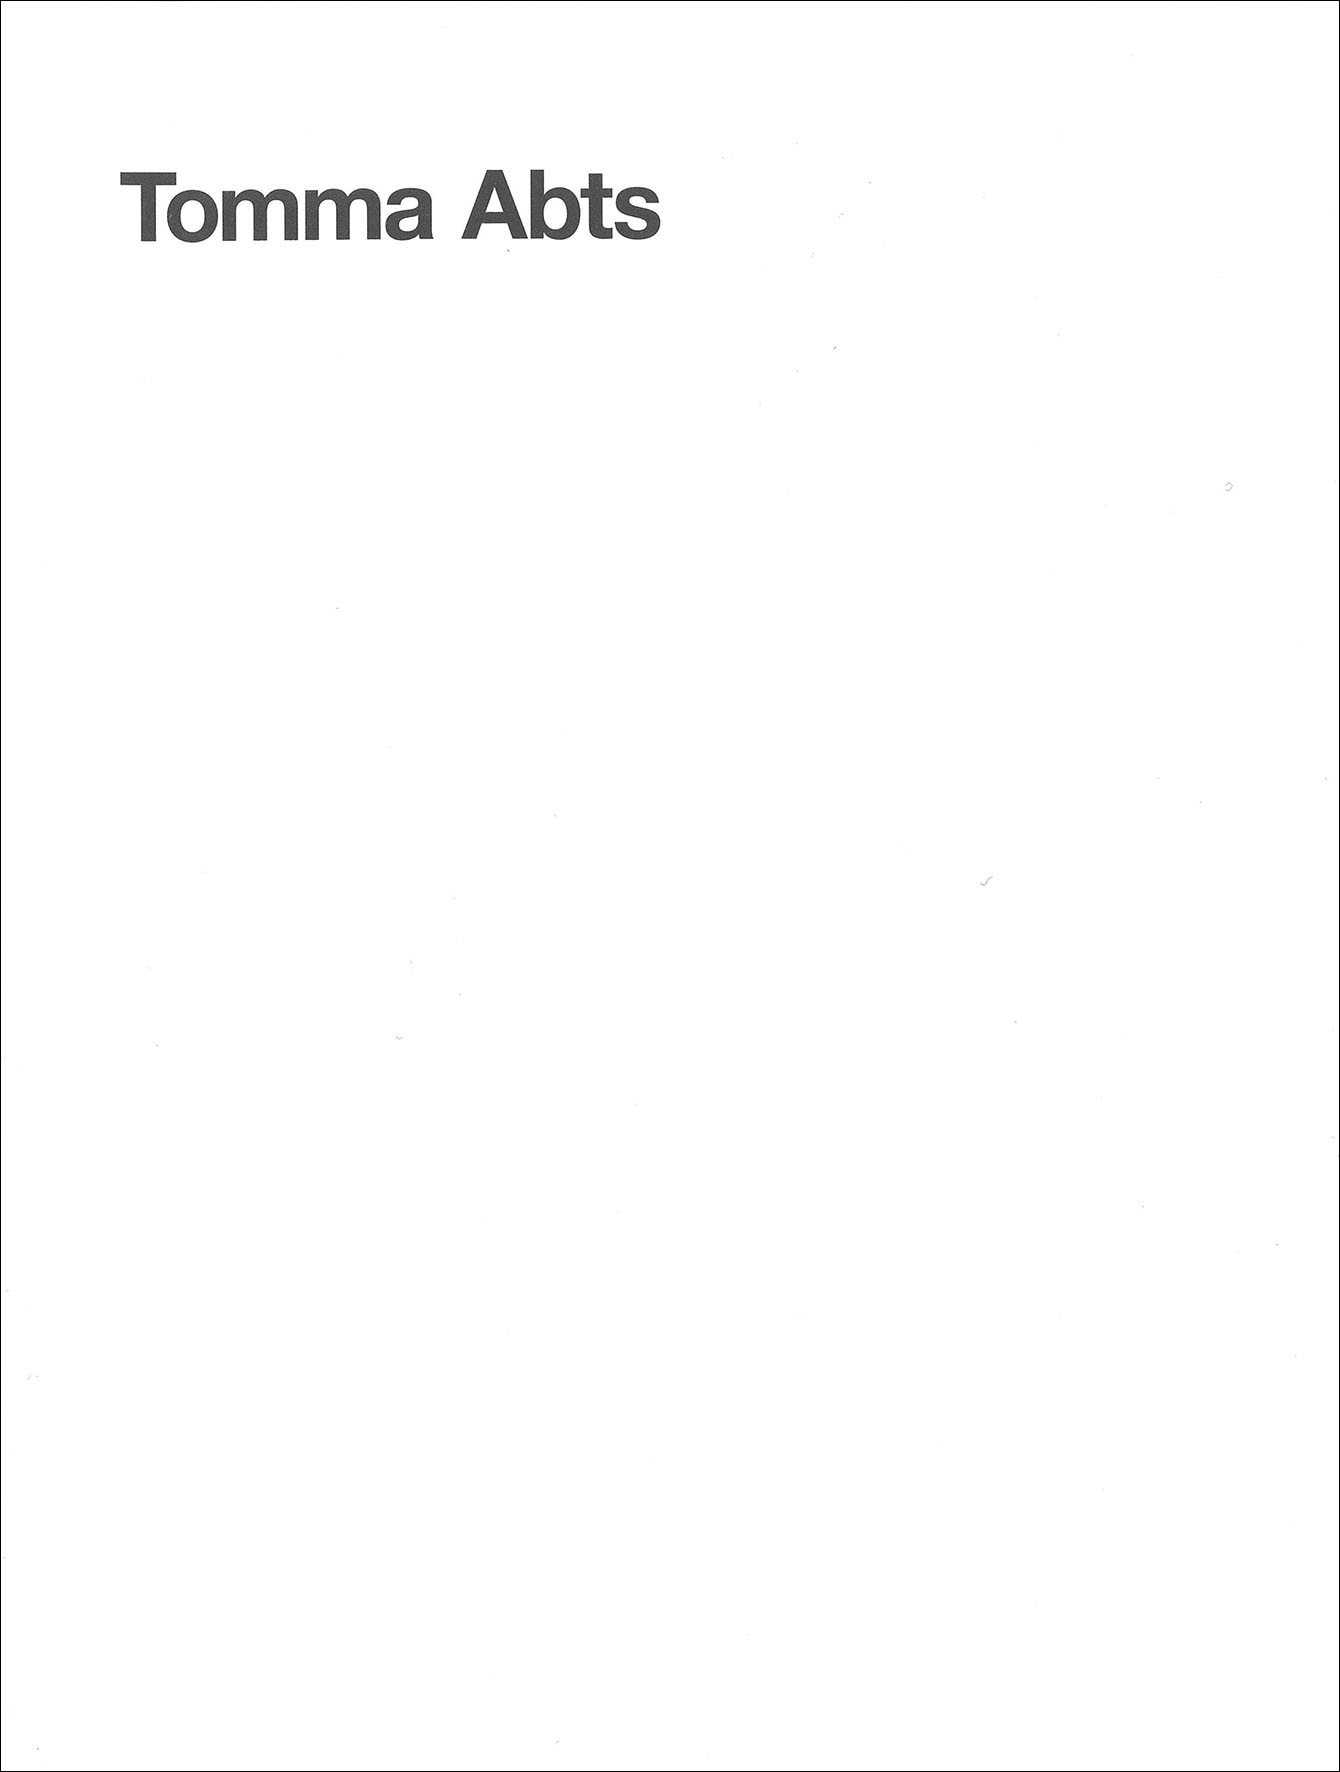 Tomma Abts – 2004, 52 p. various color illustrations, Owrps., 23 x 17,5 cm Edition 800 Text by Jan Verwoert in German and English and interview with Peter Doig. out of print – First publication on the artist Tomma Abts. The book contains an essay by Jan Verwoert, a conversation between Tomma Abts and Peter Doig and color reproductions of ten paintings that have been selected by the artist.